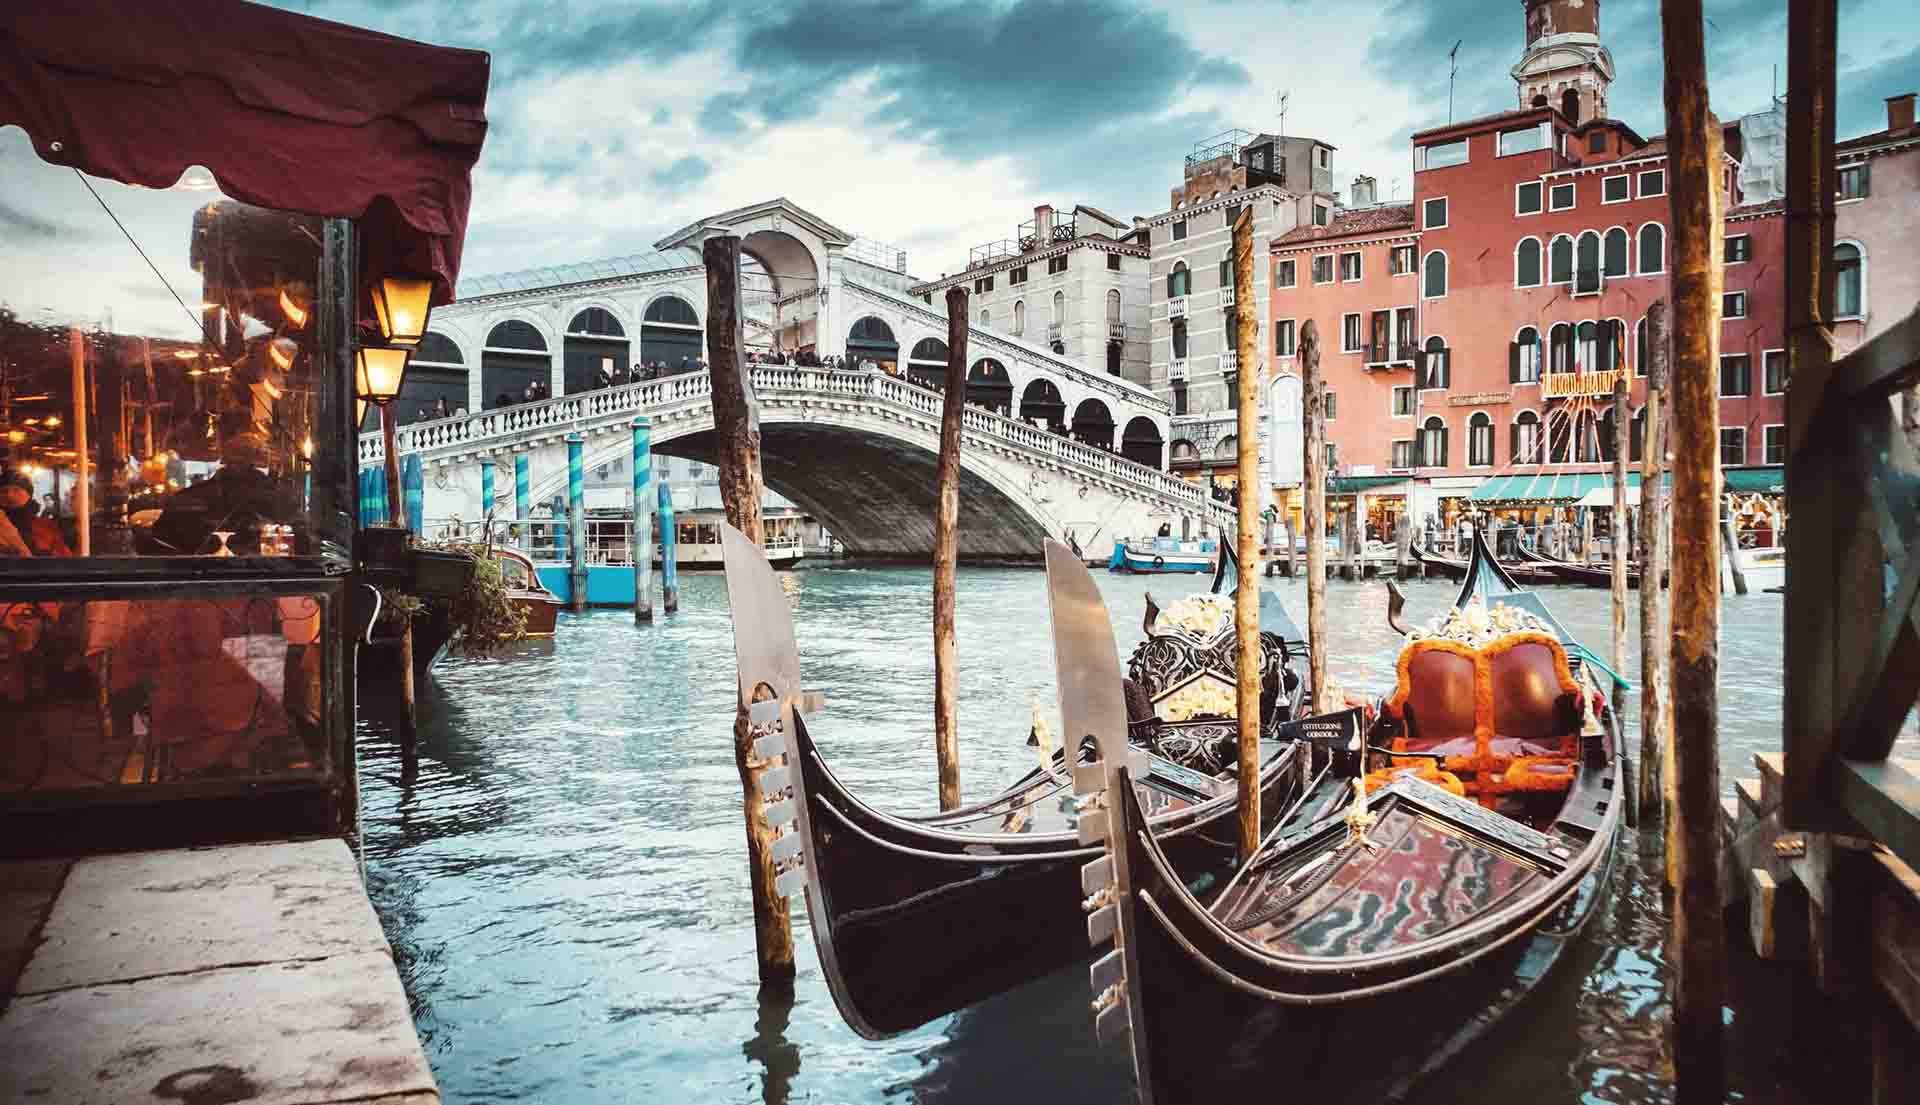 Rialto Bridge view, Venice, Italy